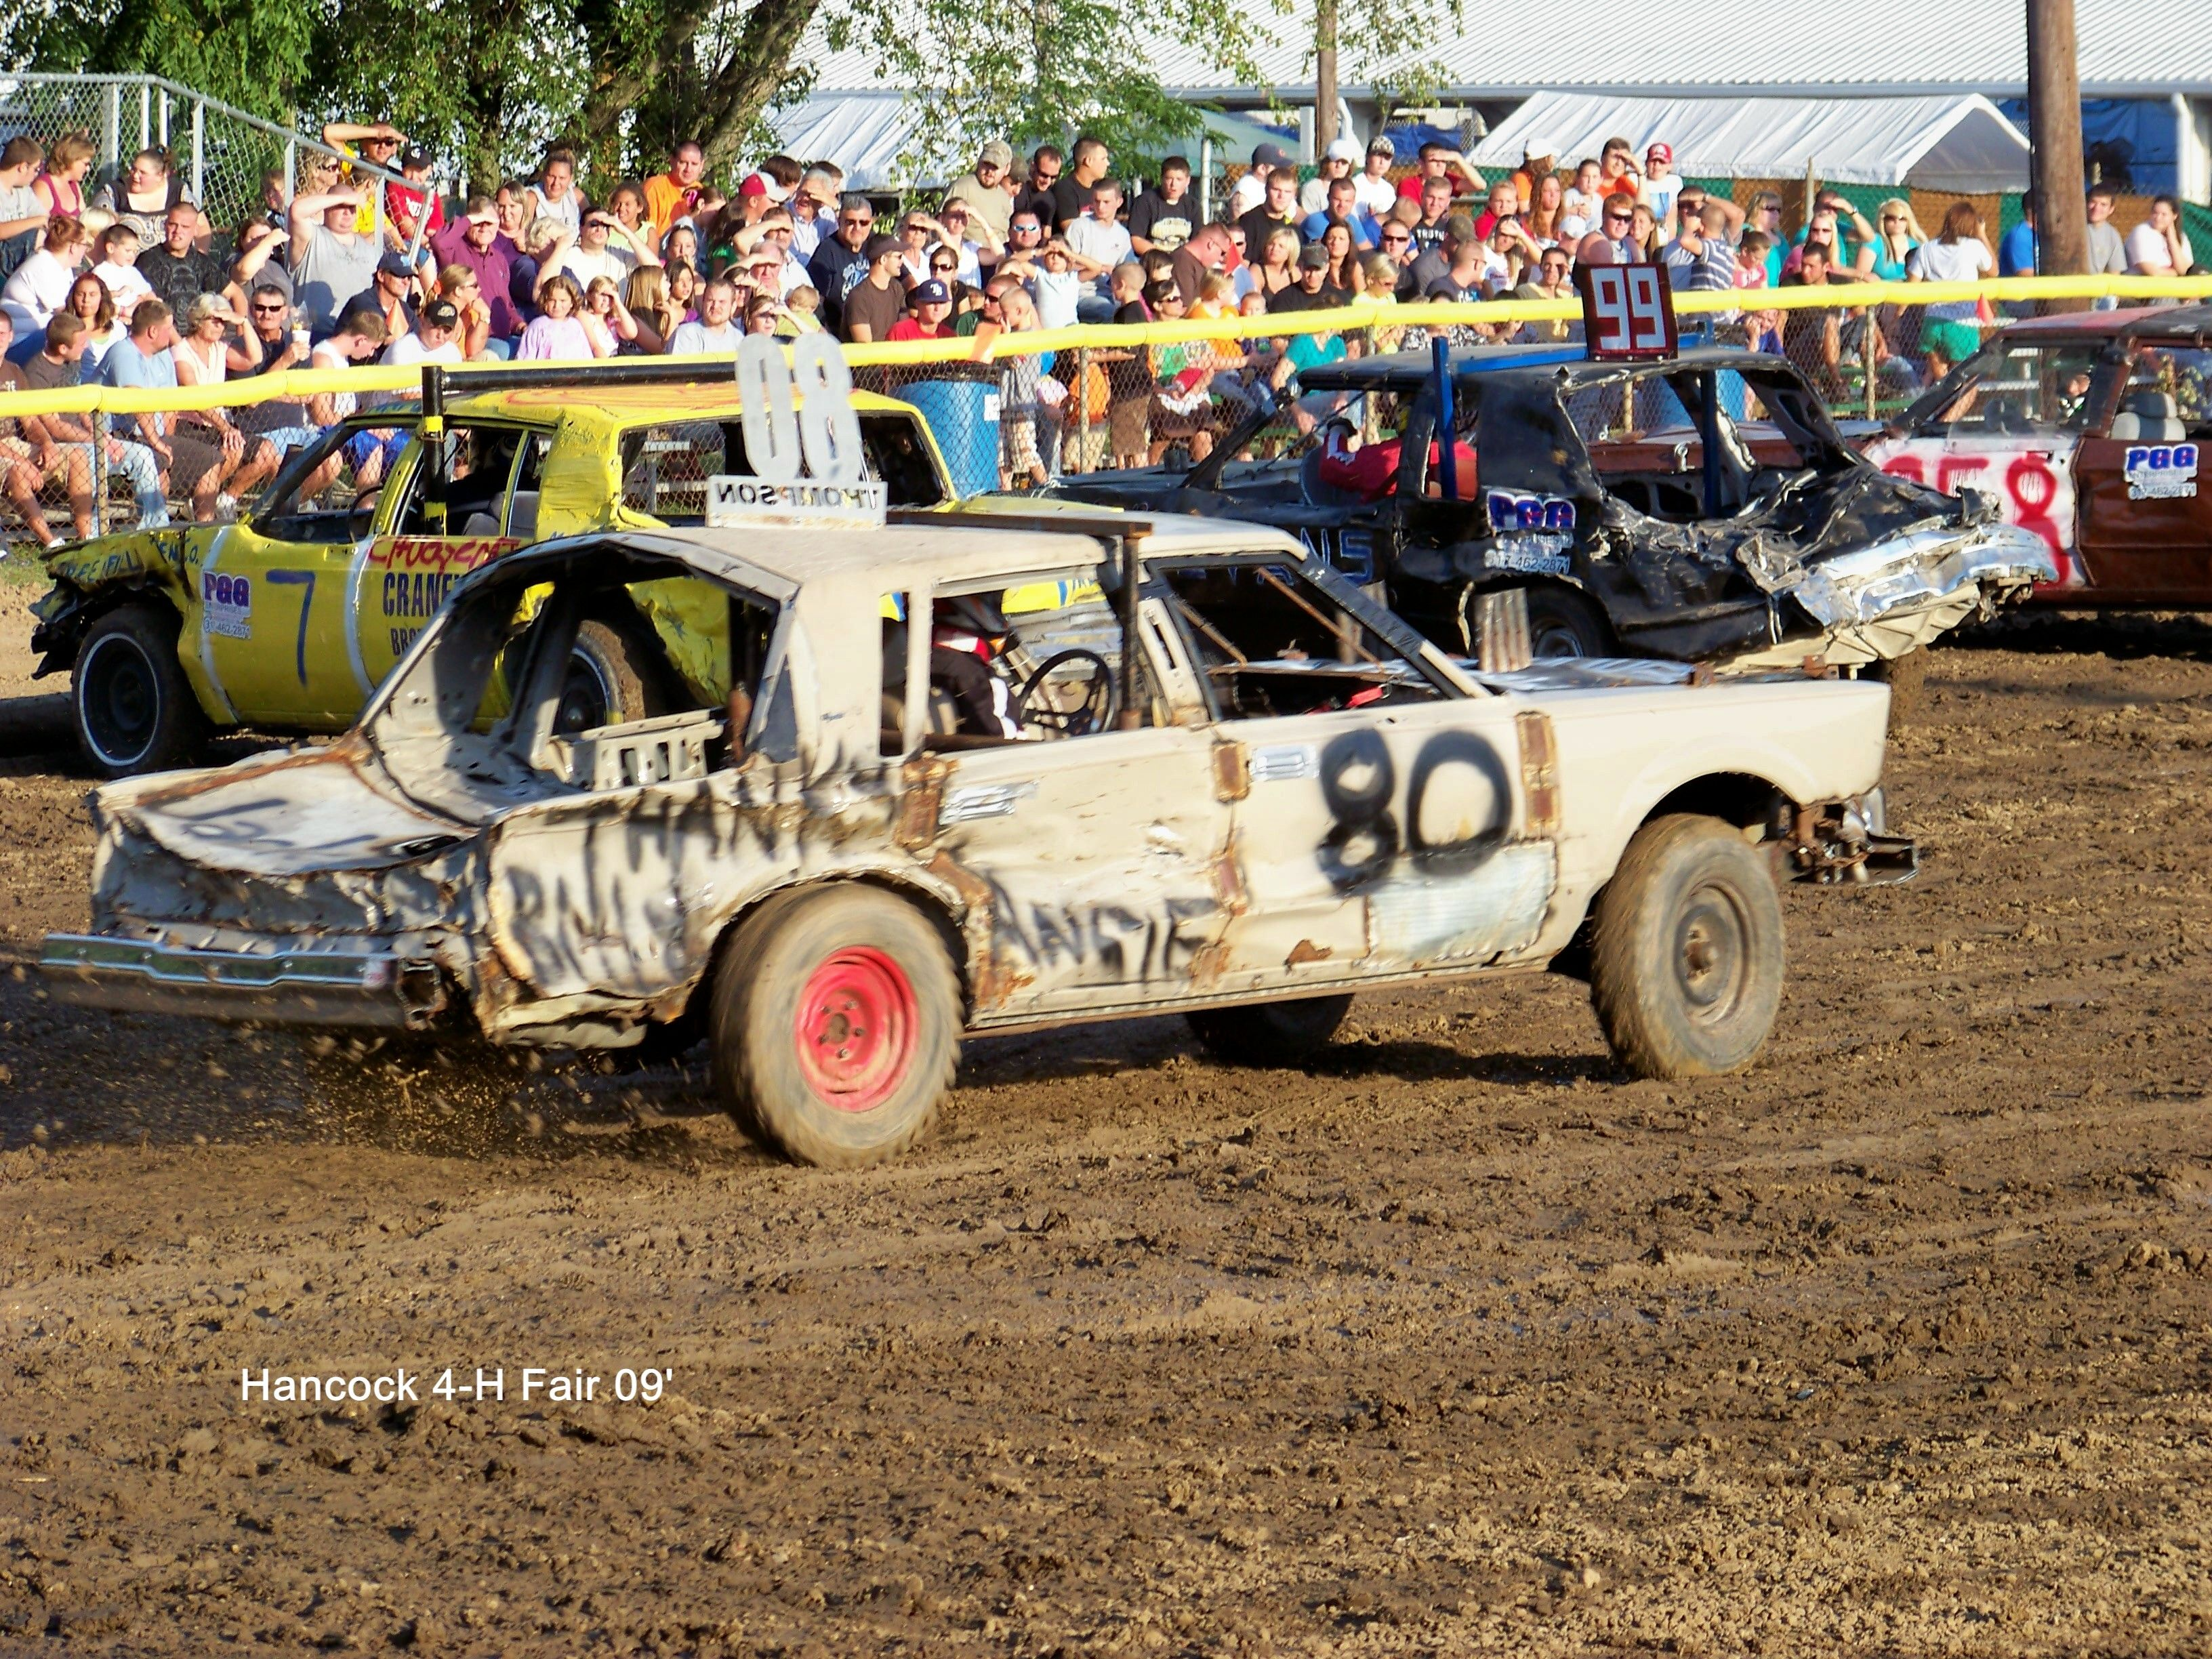 Bash for cash 2015 truck derby my derby life becca gardin truck 1027 pinterest 2015 trucks demolition derby and demolition derby cars